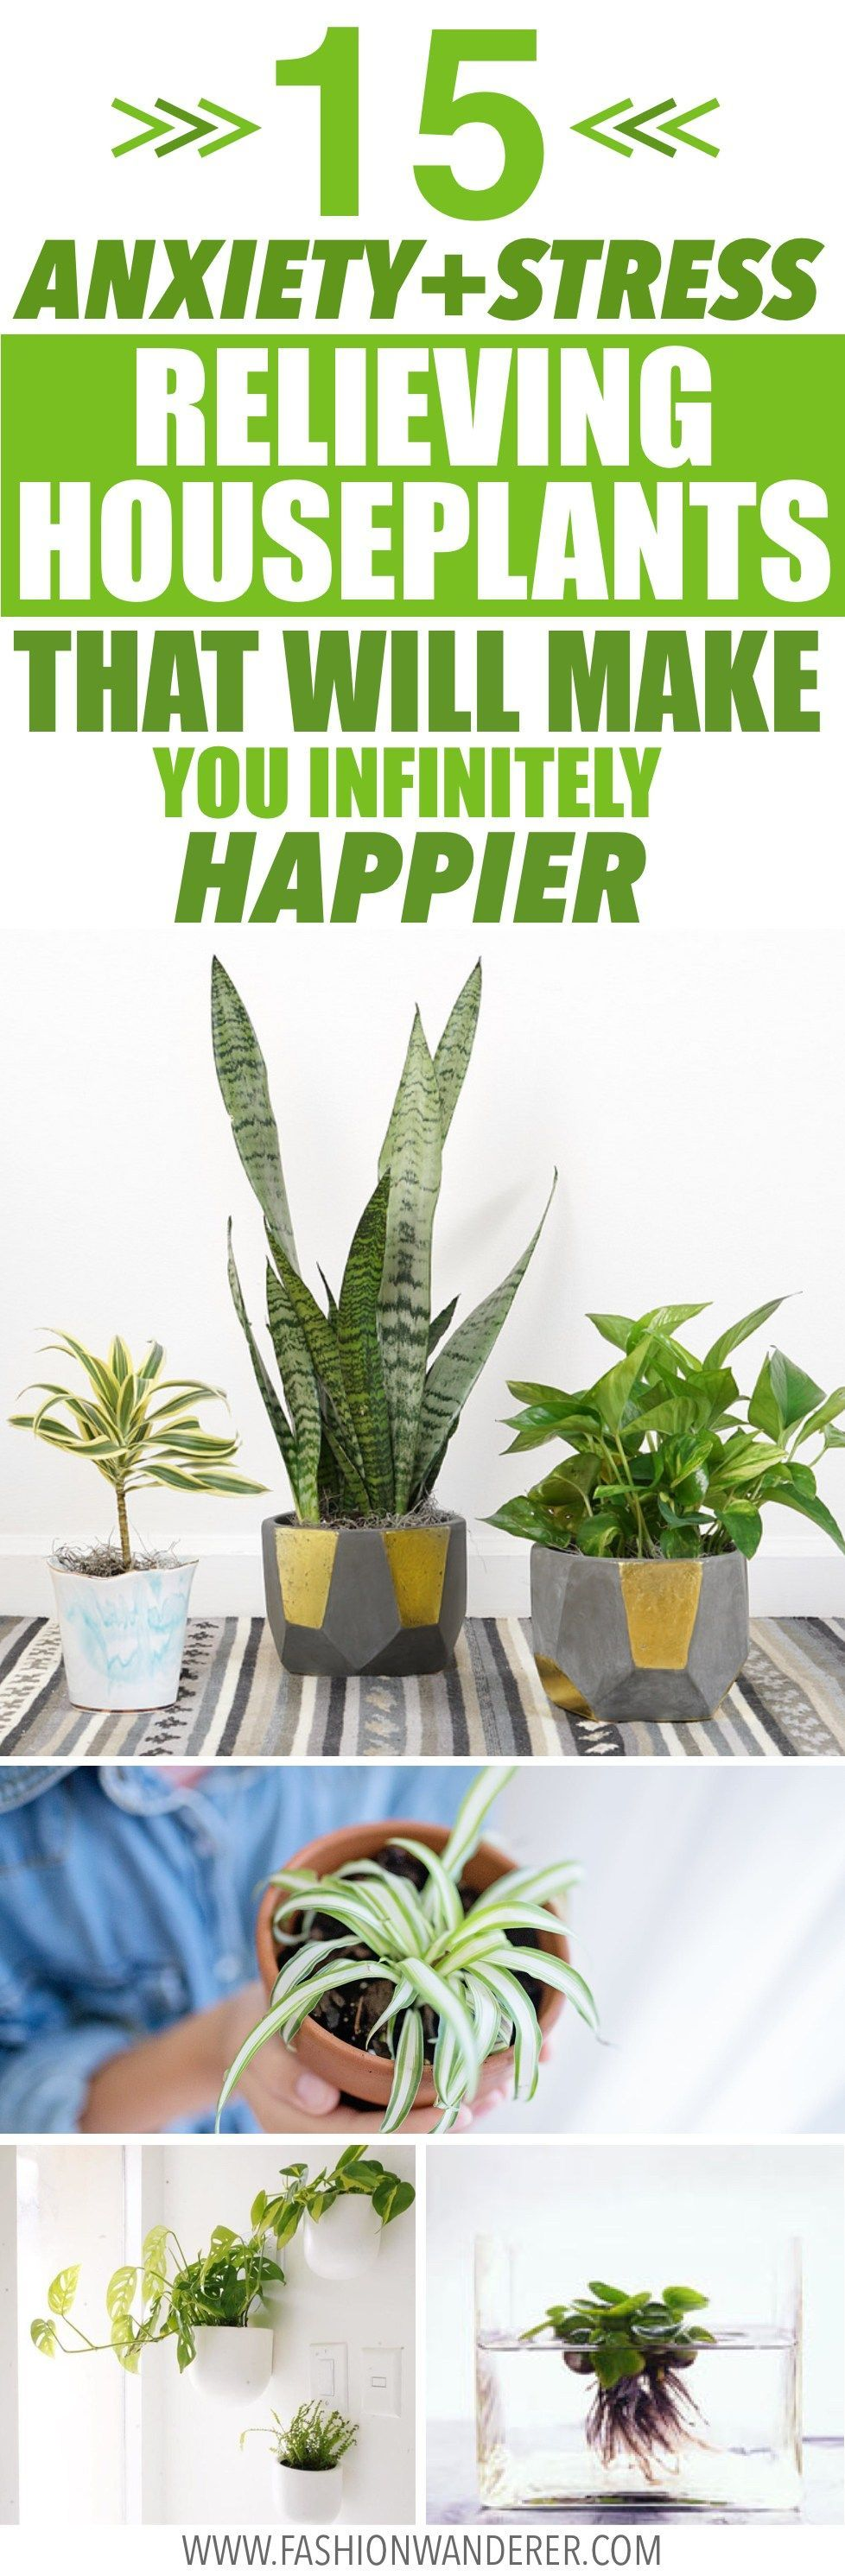 These Anxiety And Stress Relieving Houseplants Are The Best Home